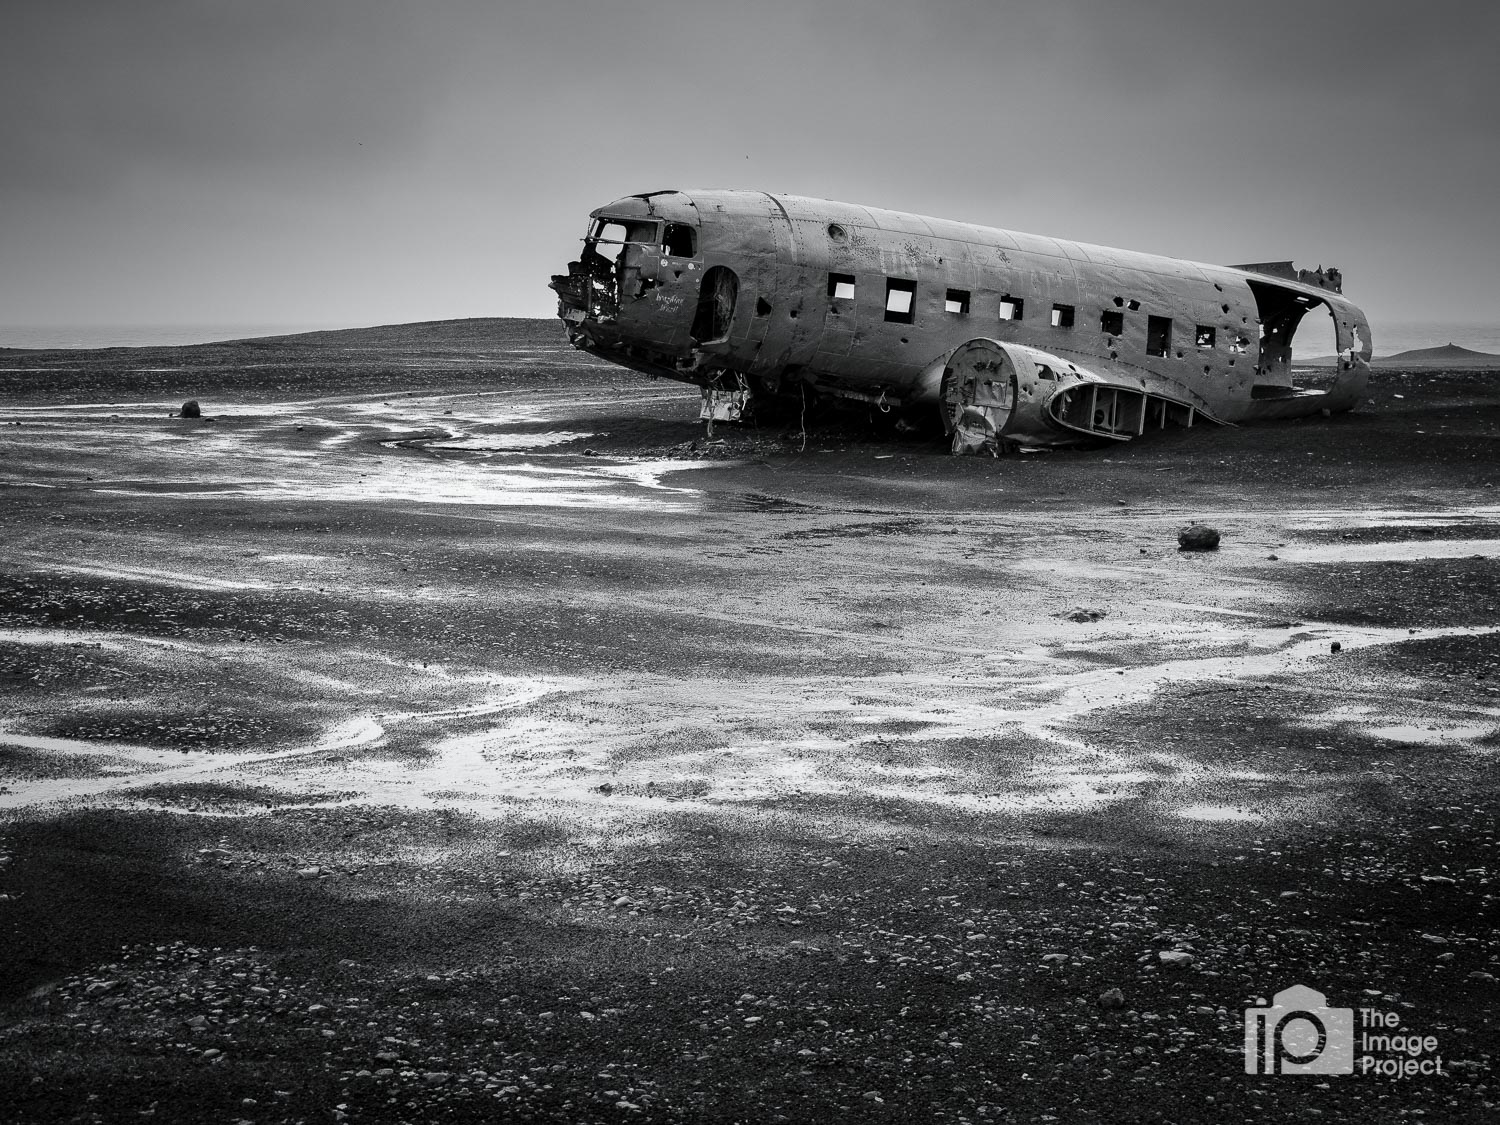 abandoned douglas r4d-8 airplane on beach vedur south iceland during rain by nathan barry the image project